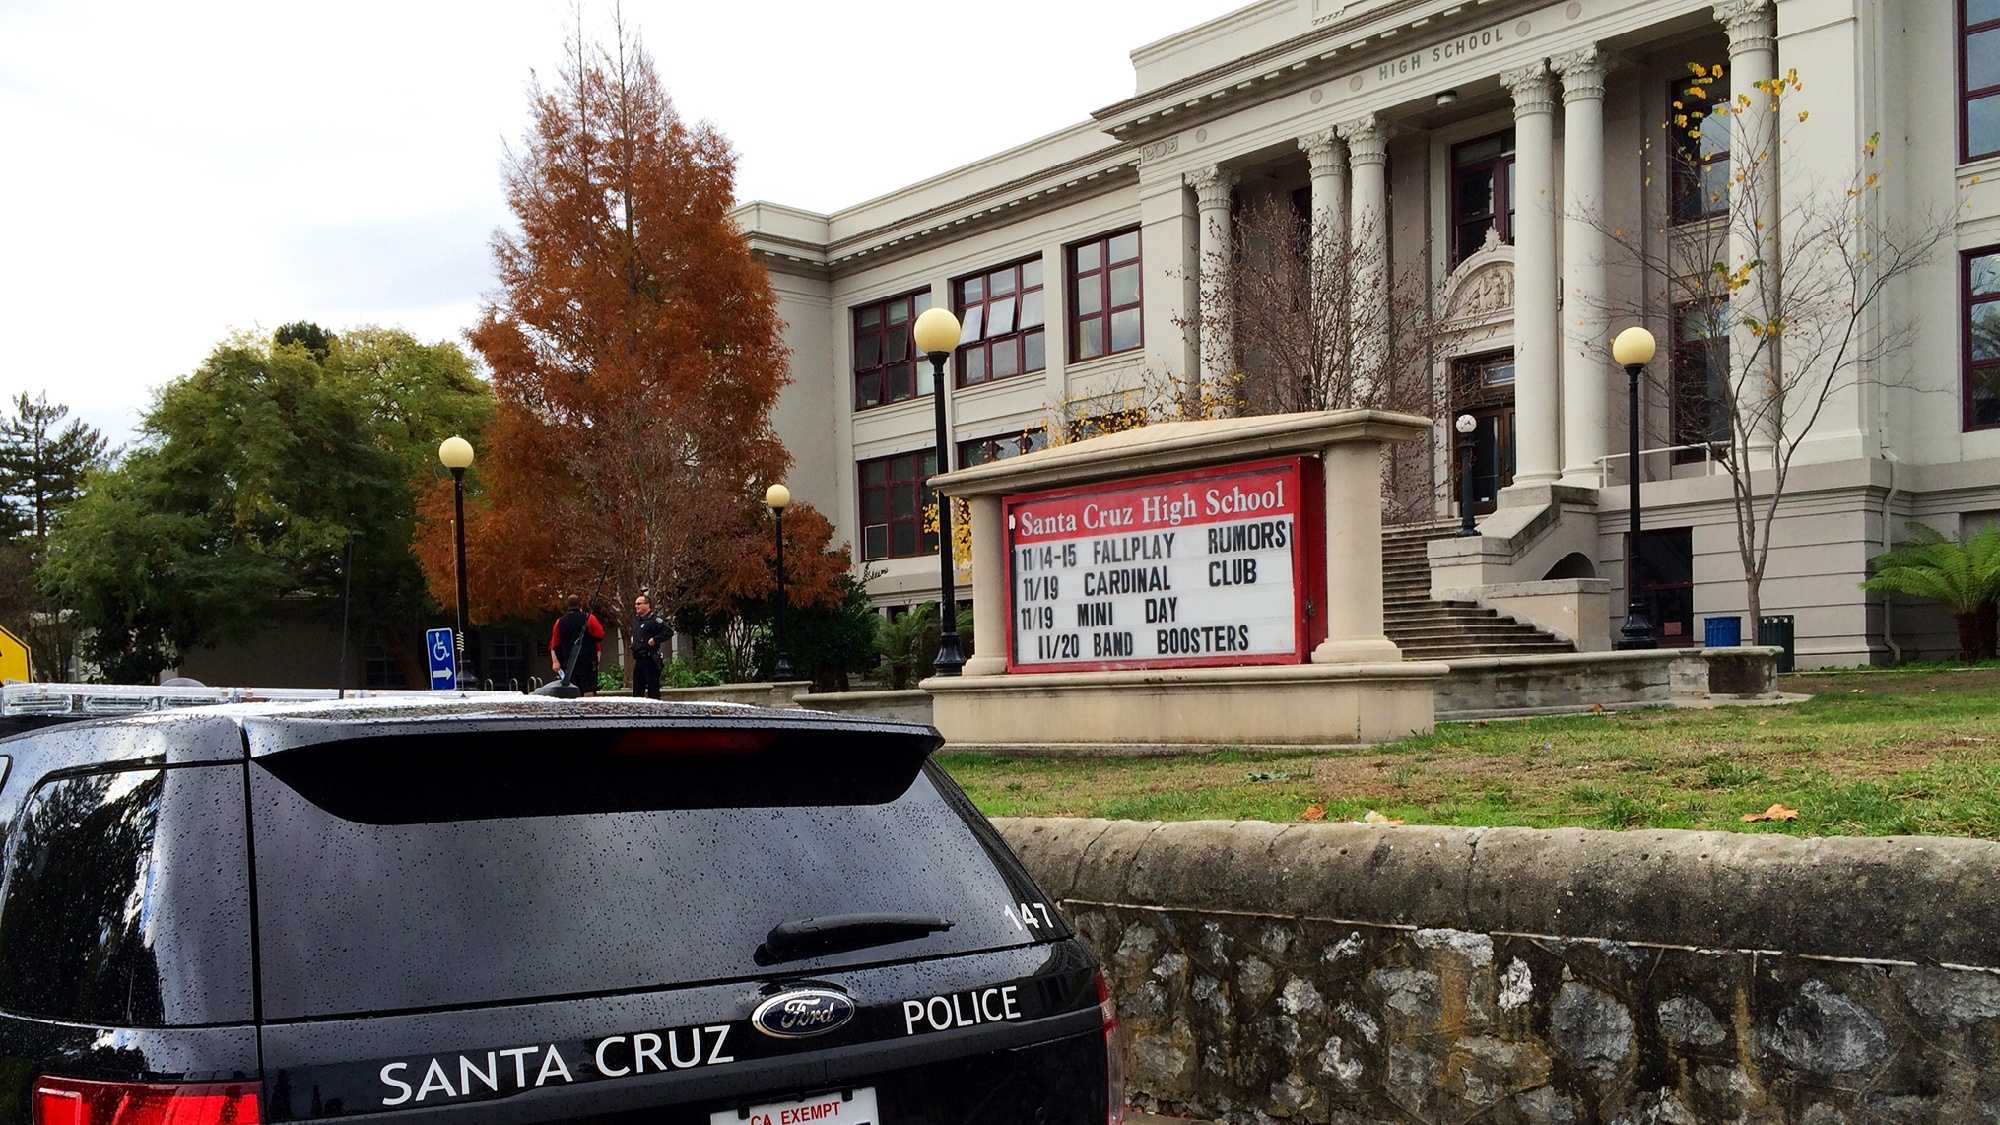 There were no students at Santa Cruz High School Wednesday.